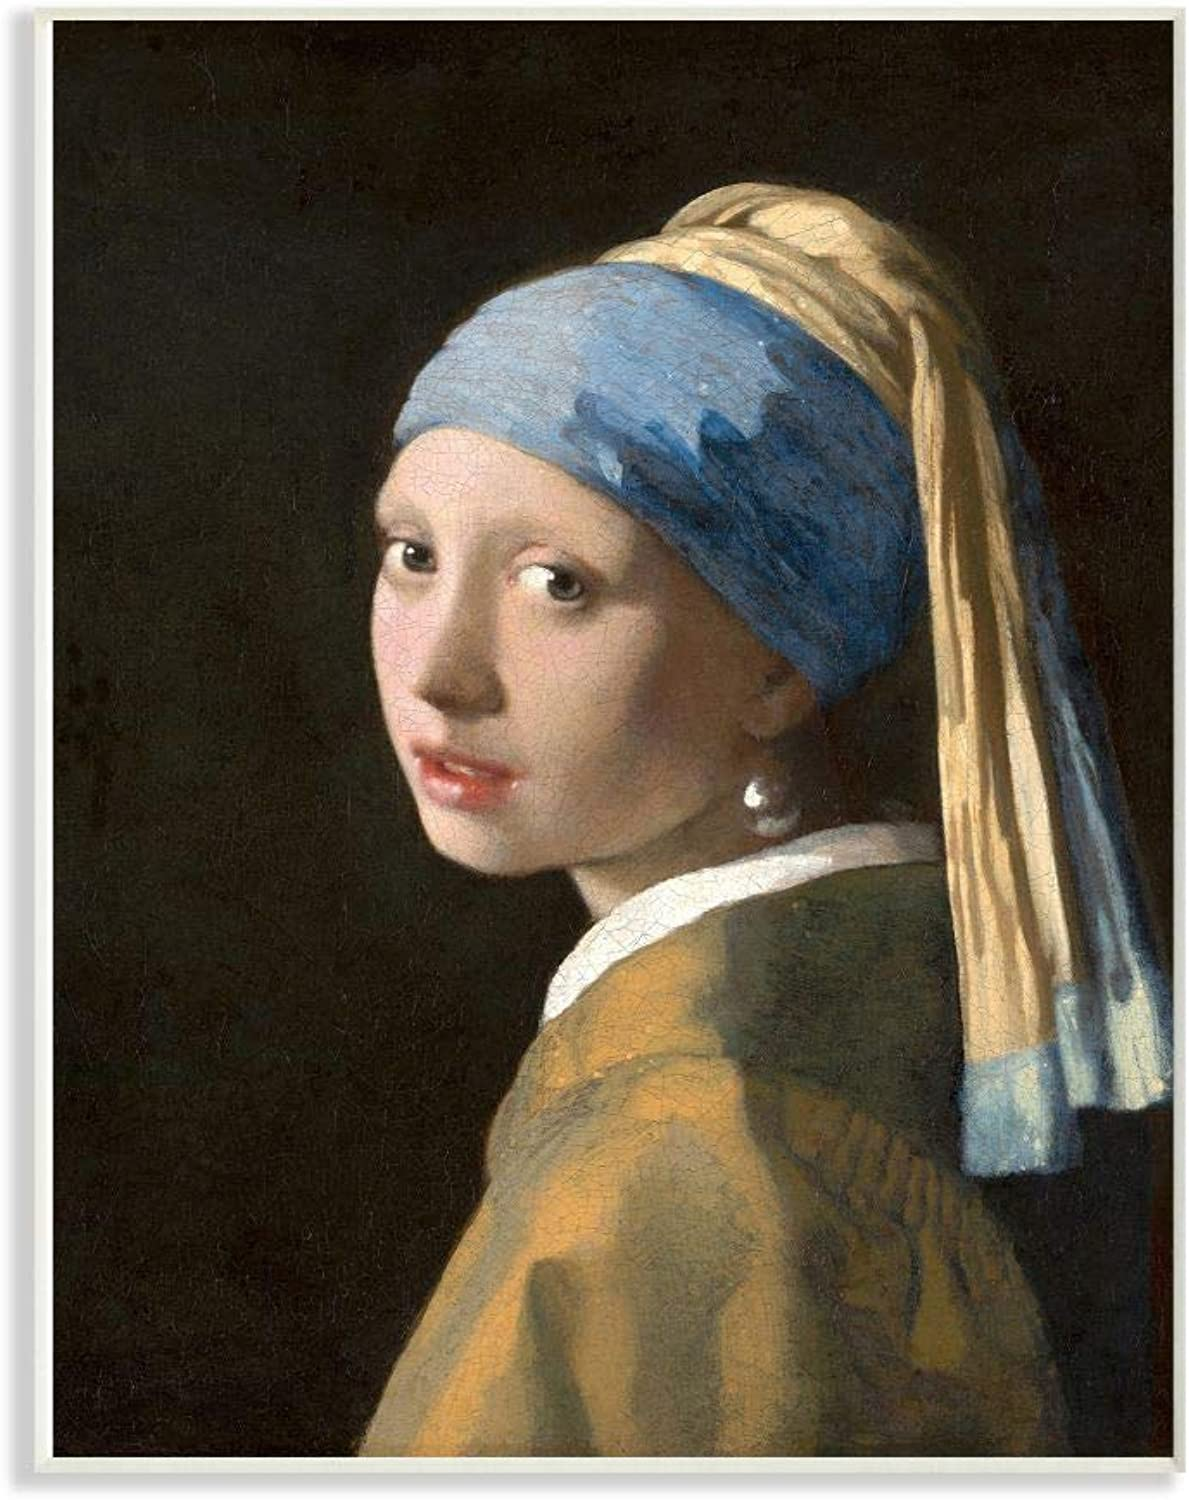 The Stupell Home Decor Collection ffa-109_wd_12x18 Vermeer Girl with A Pearl Earring Classical Portrait Painting Wall Plaque Art, 12 x 18